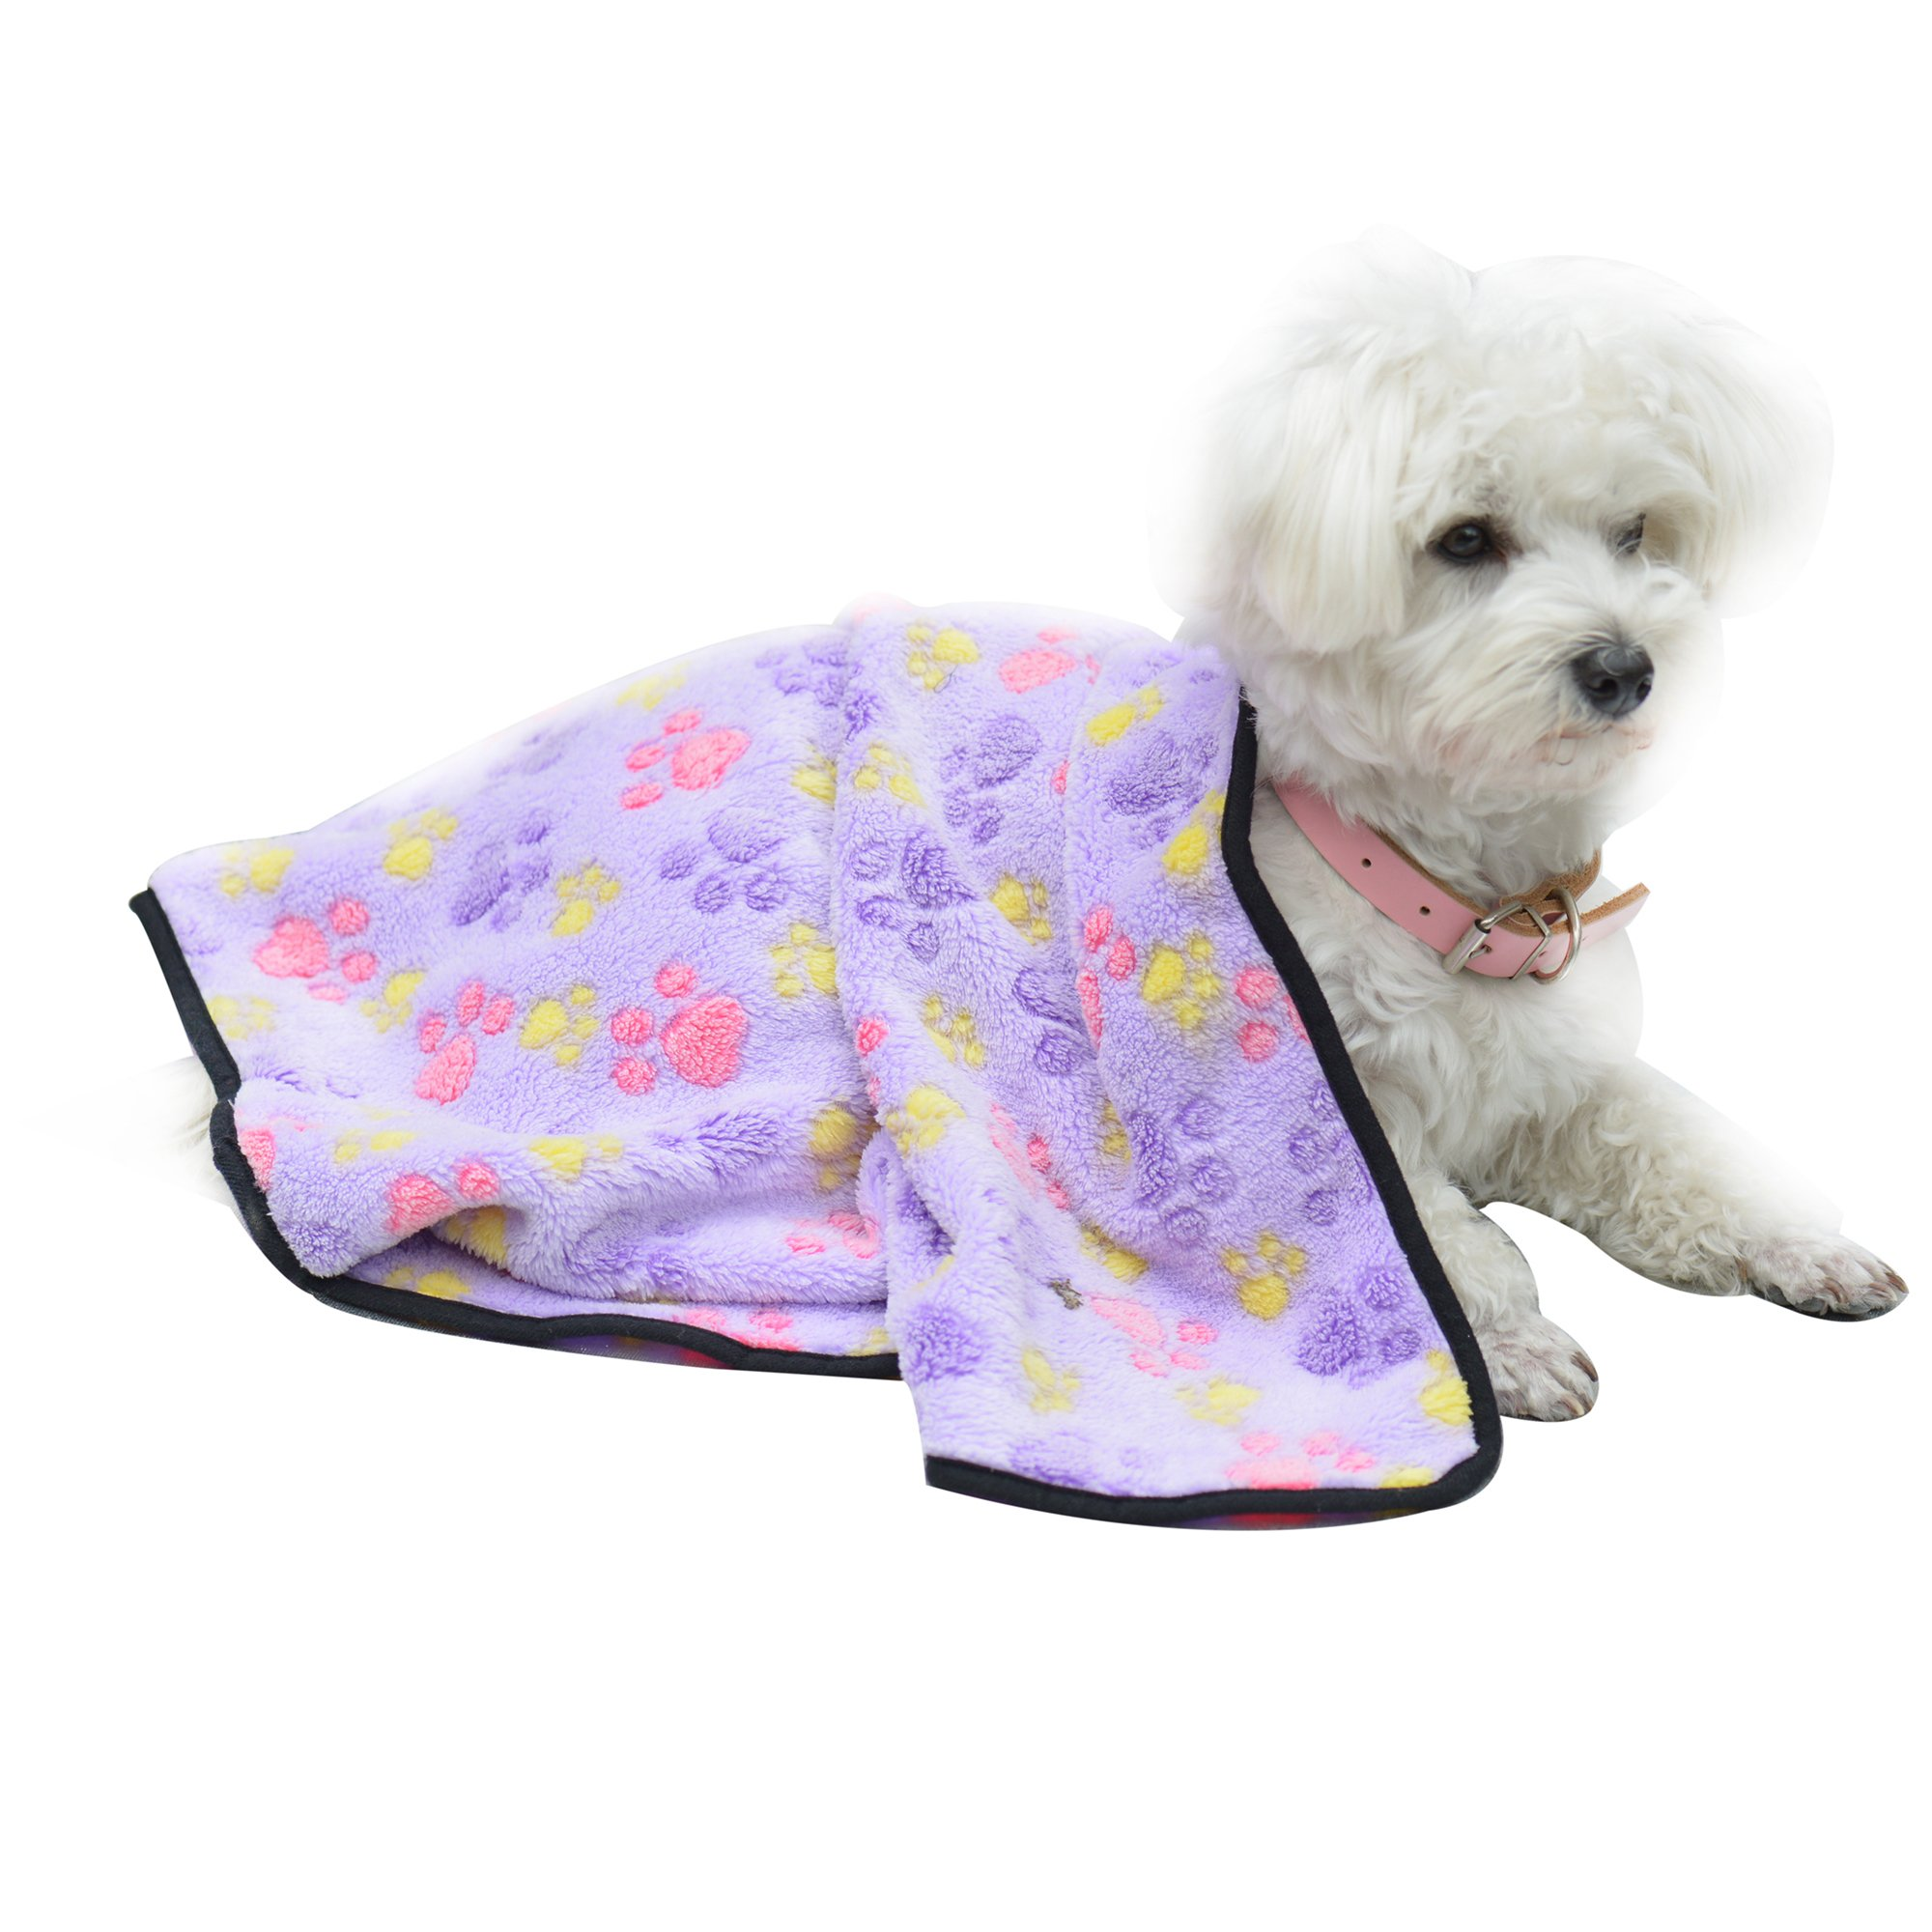 EXPAWLORER Pet Blanket for Small Cats & Dogs Thick L 10476cm Purple